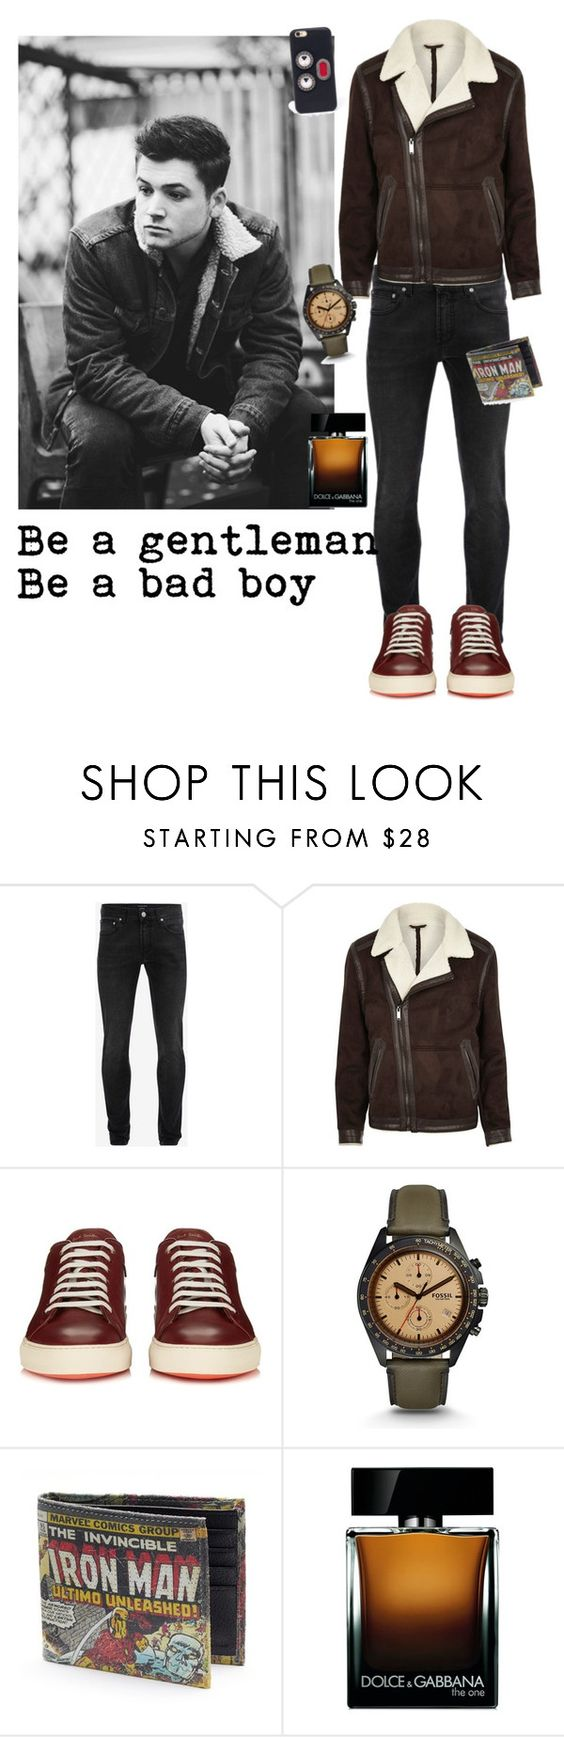 """Taron Egerton"" by dawn-sbh ❤ liked on Polyvore featuring Alexander McQueen, River Island, Paul Smith, FOSSIL, Dolce&Gabbana, Fendi, men's fashion, menswear, darkdenim and menswearessential"